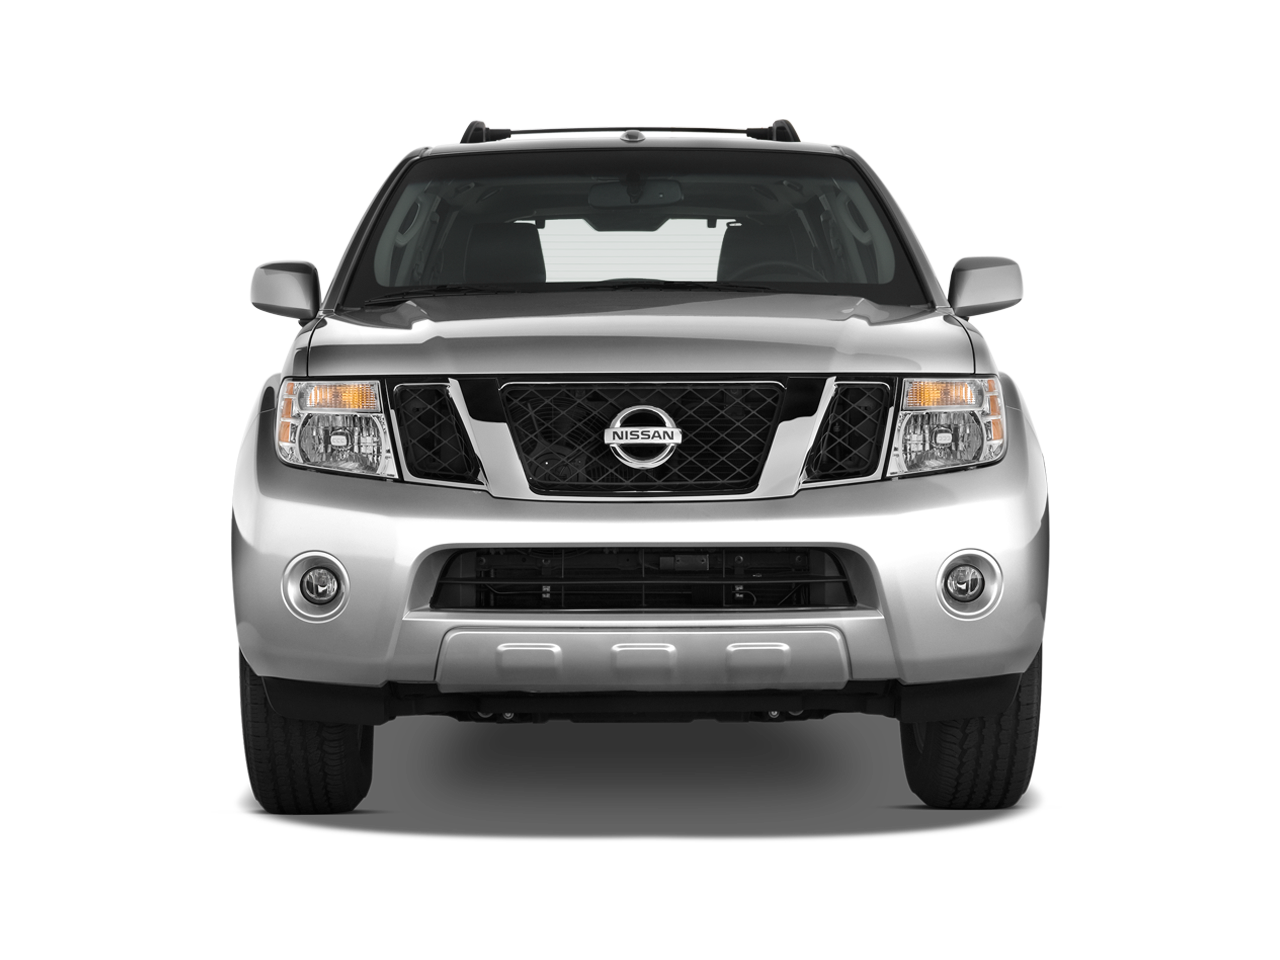 2009 nissan pathfinder le 4x4 nissan midsize suv review 450 vanachro Image collections